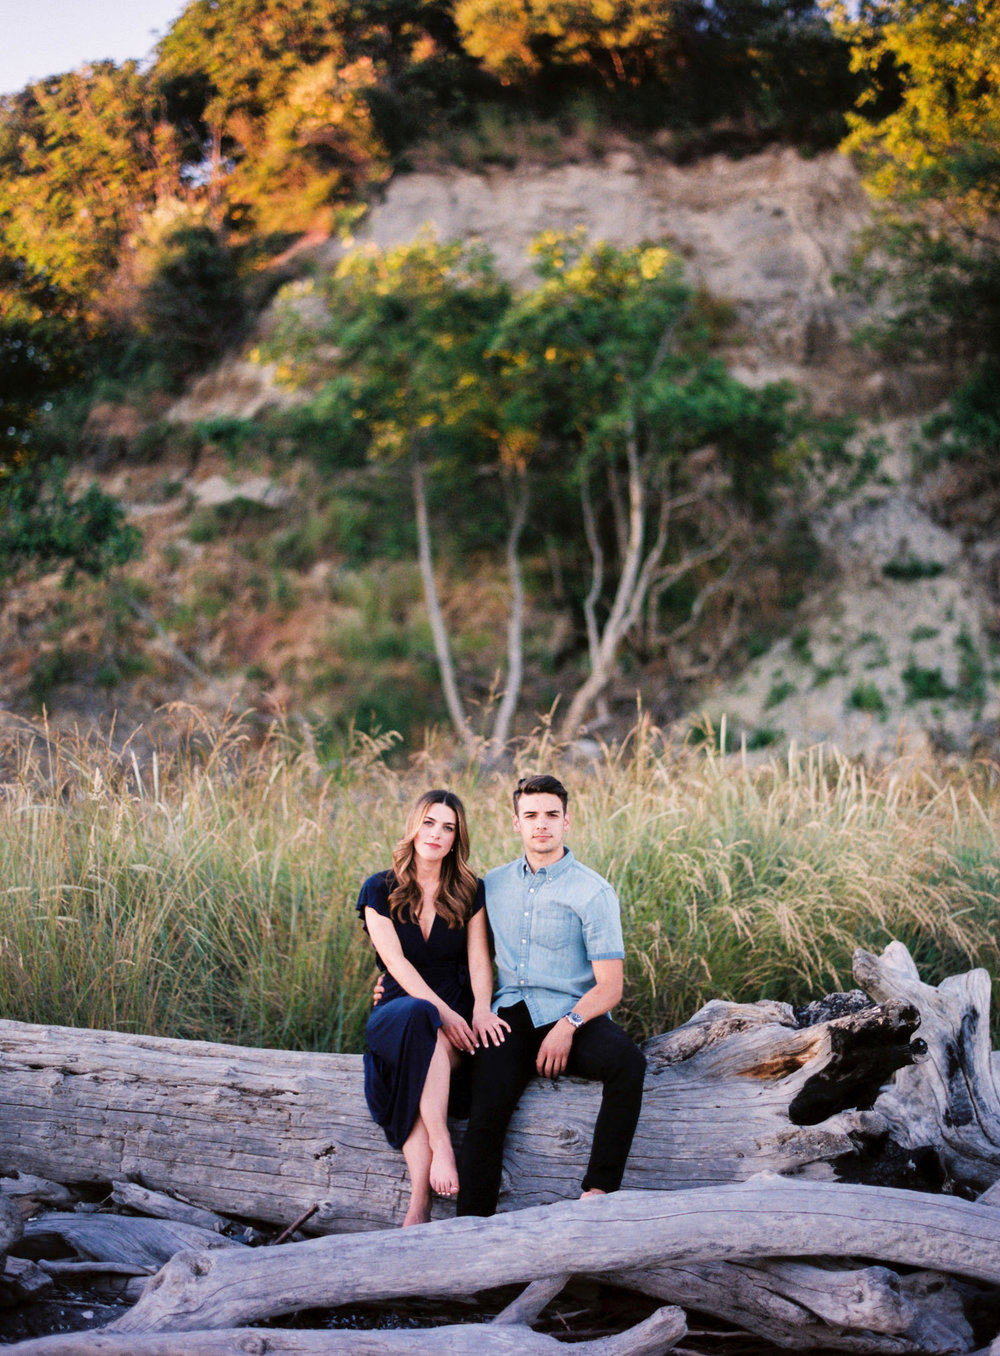 062-summery-engagement-session-with-a-goldendoodle-at-discovery-park-on-film.jpg